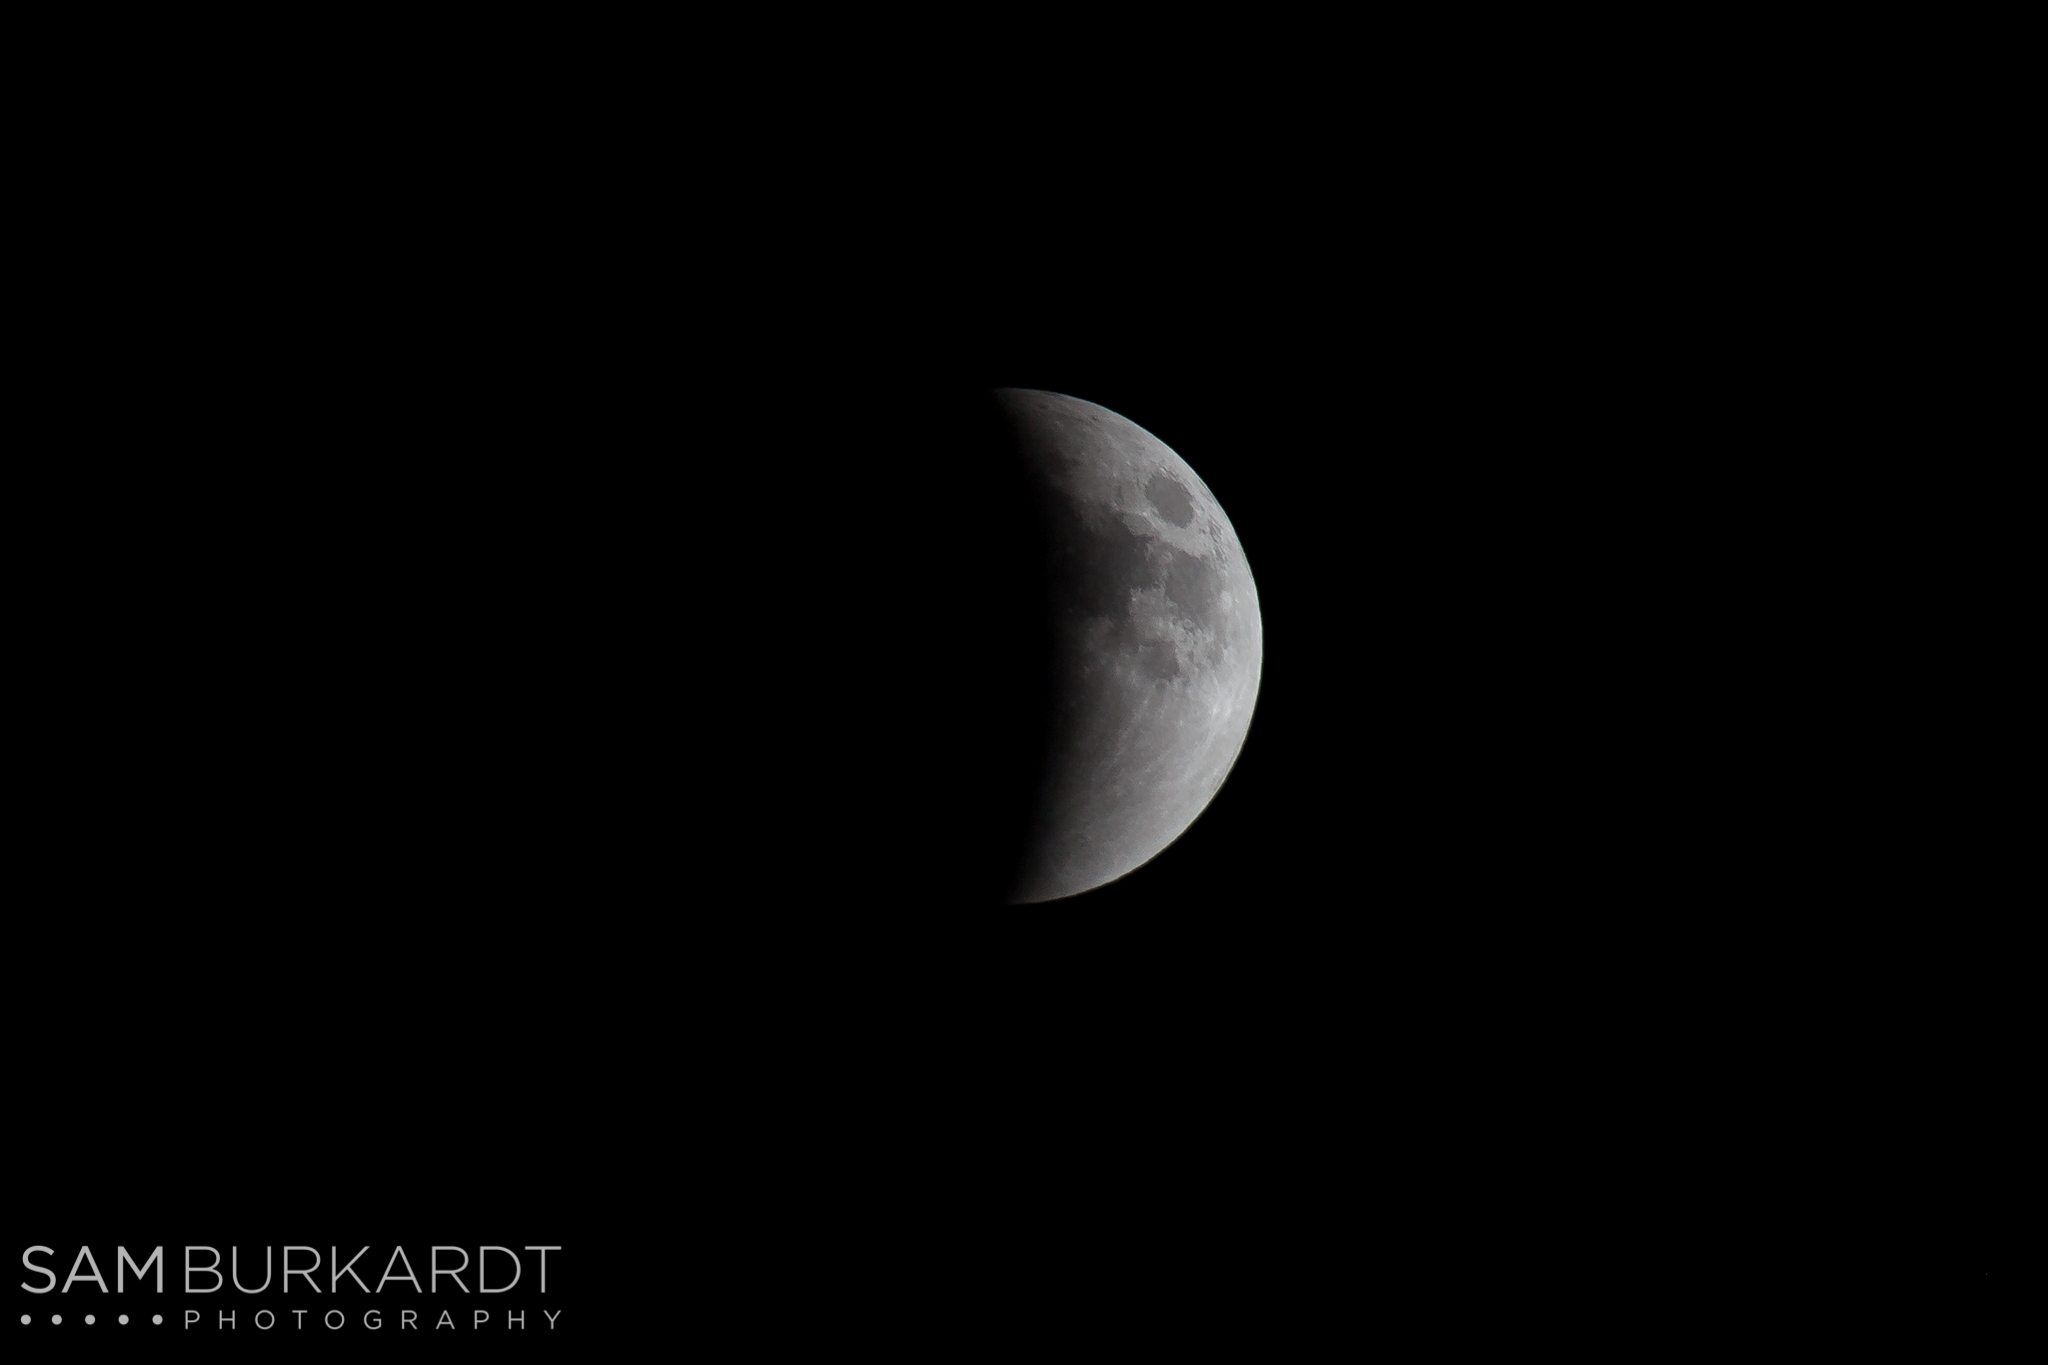 samburkardt_super_moon_lunar_eclipse_photo_settings__0002.jpg